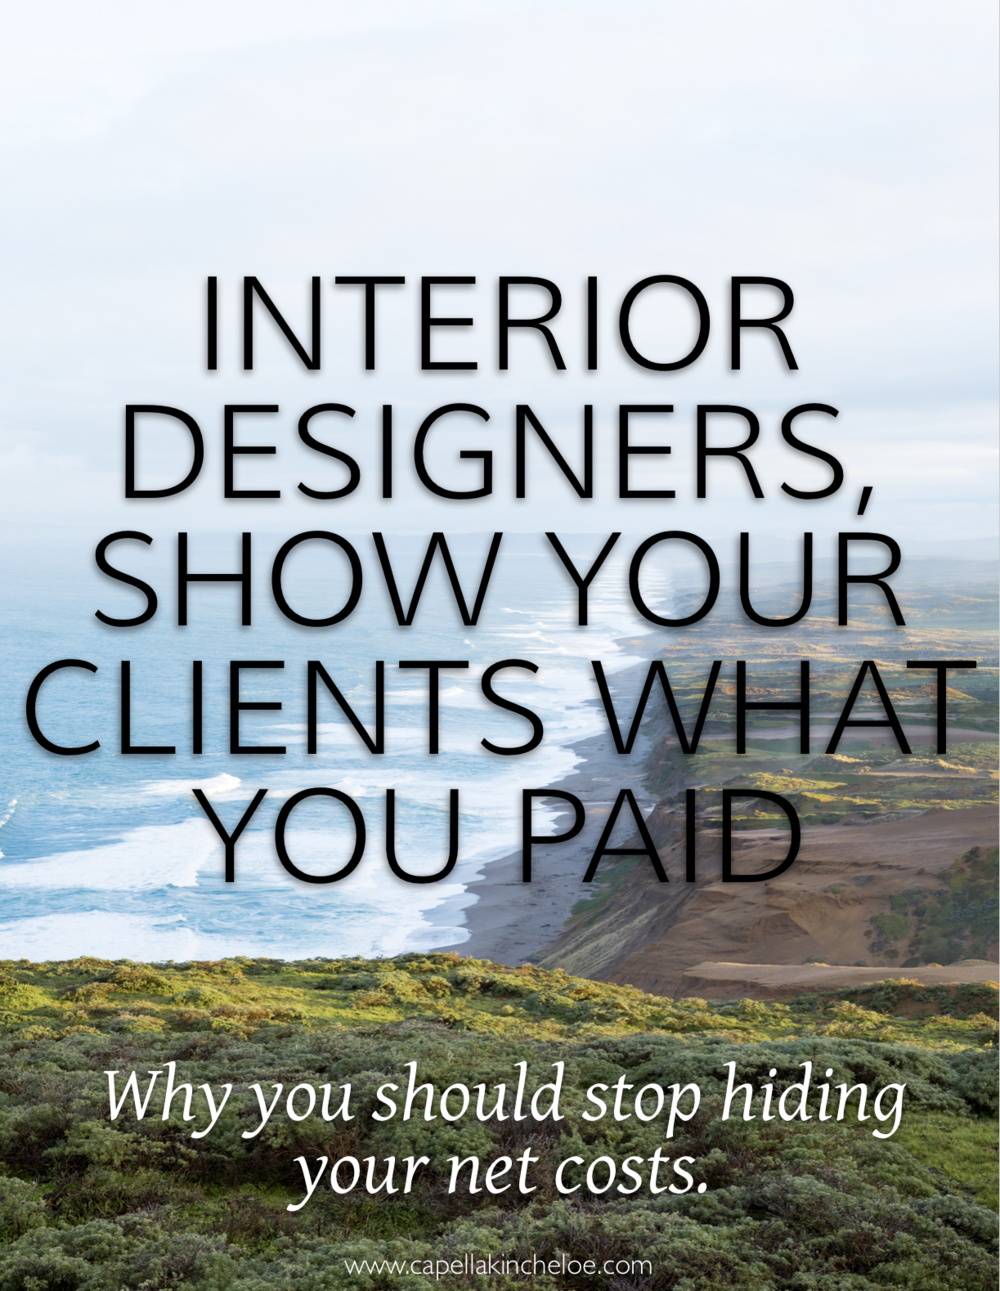 Designers Show Your Clients What You Paid Capella Kincheloe